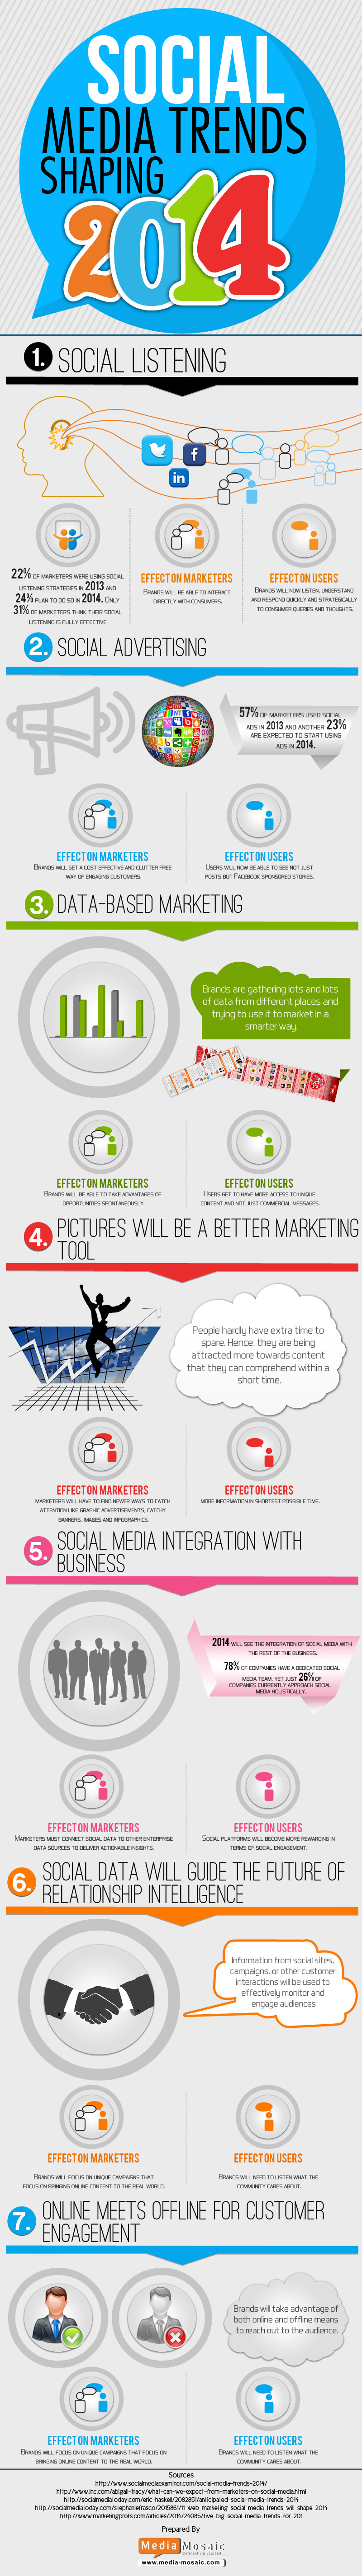 Social Media Shaping Trends 2014 Infographic